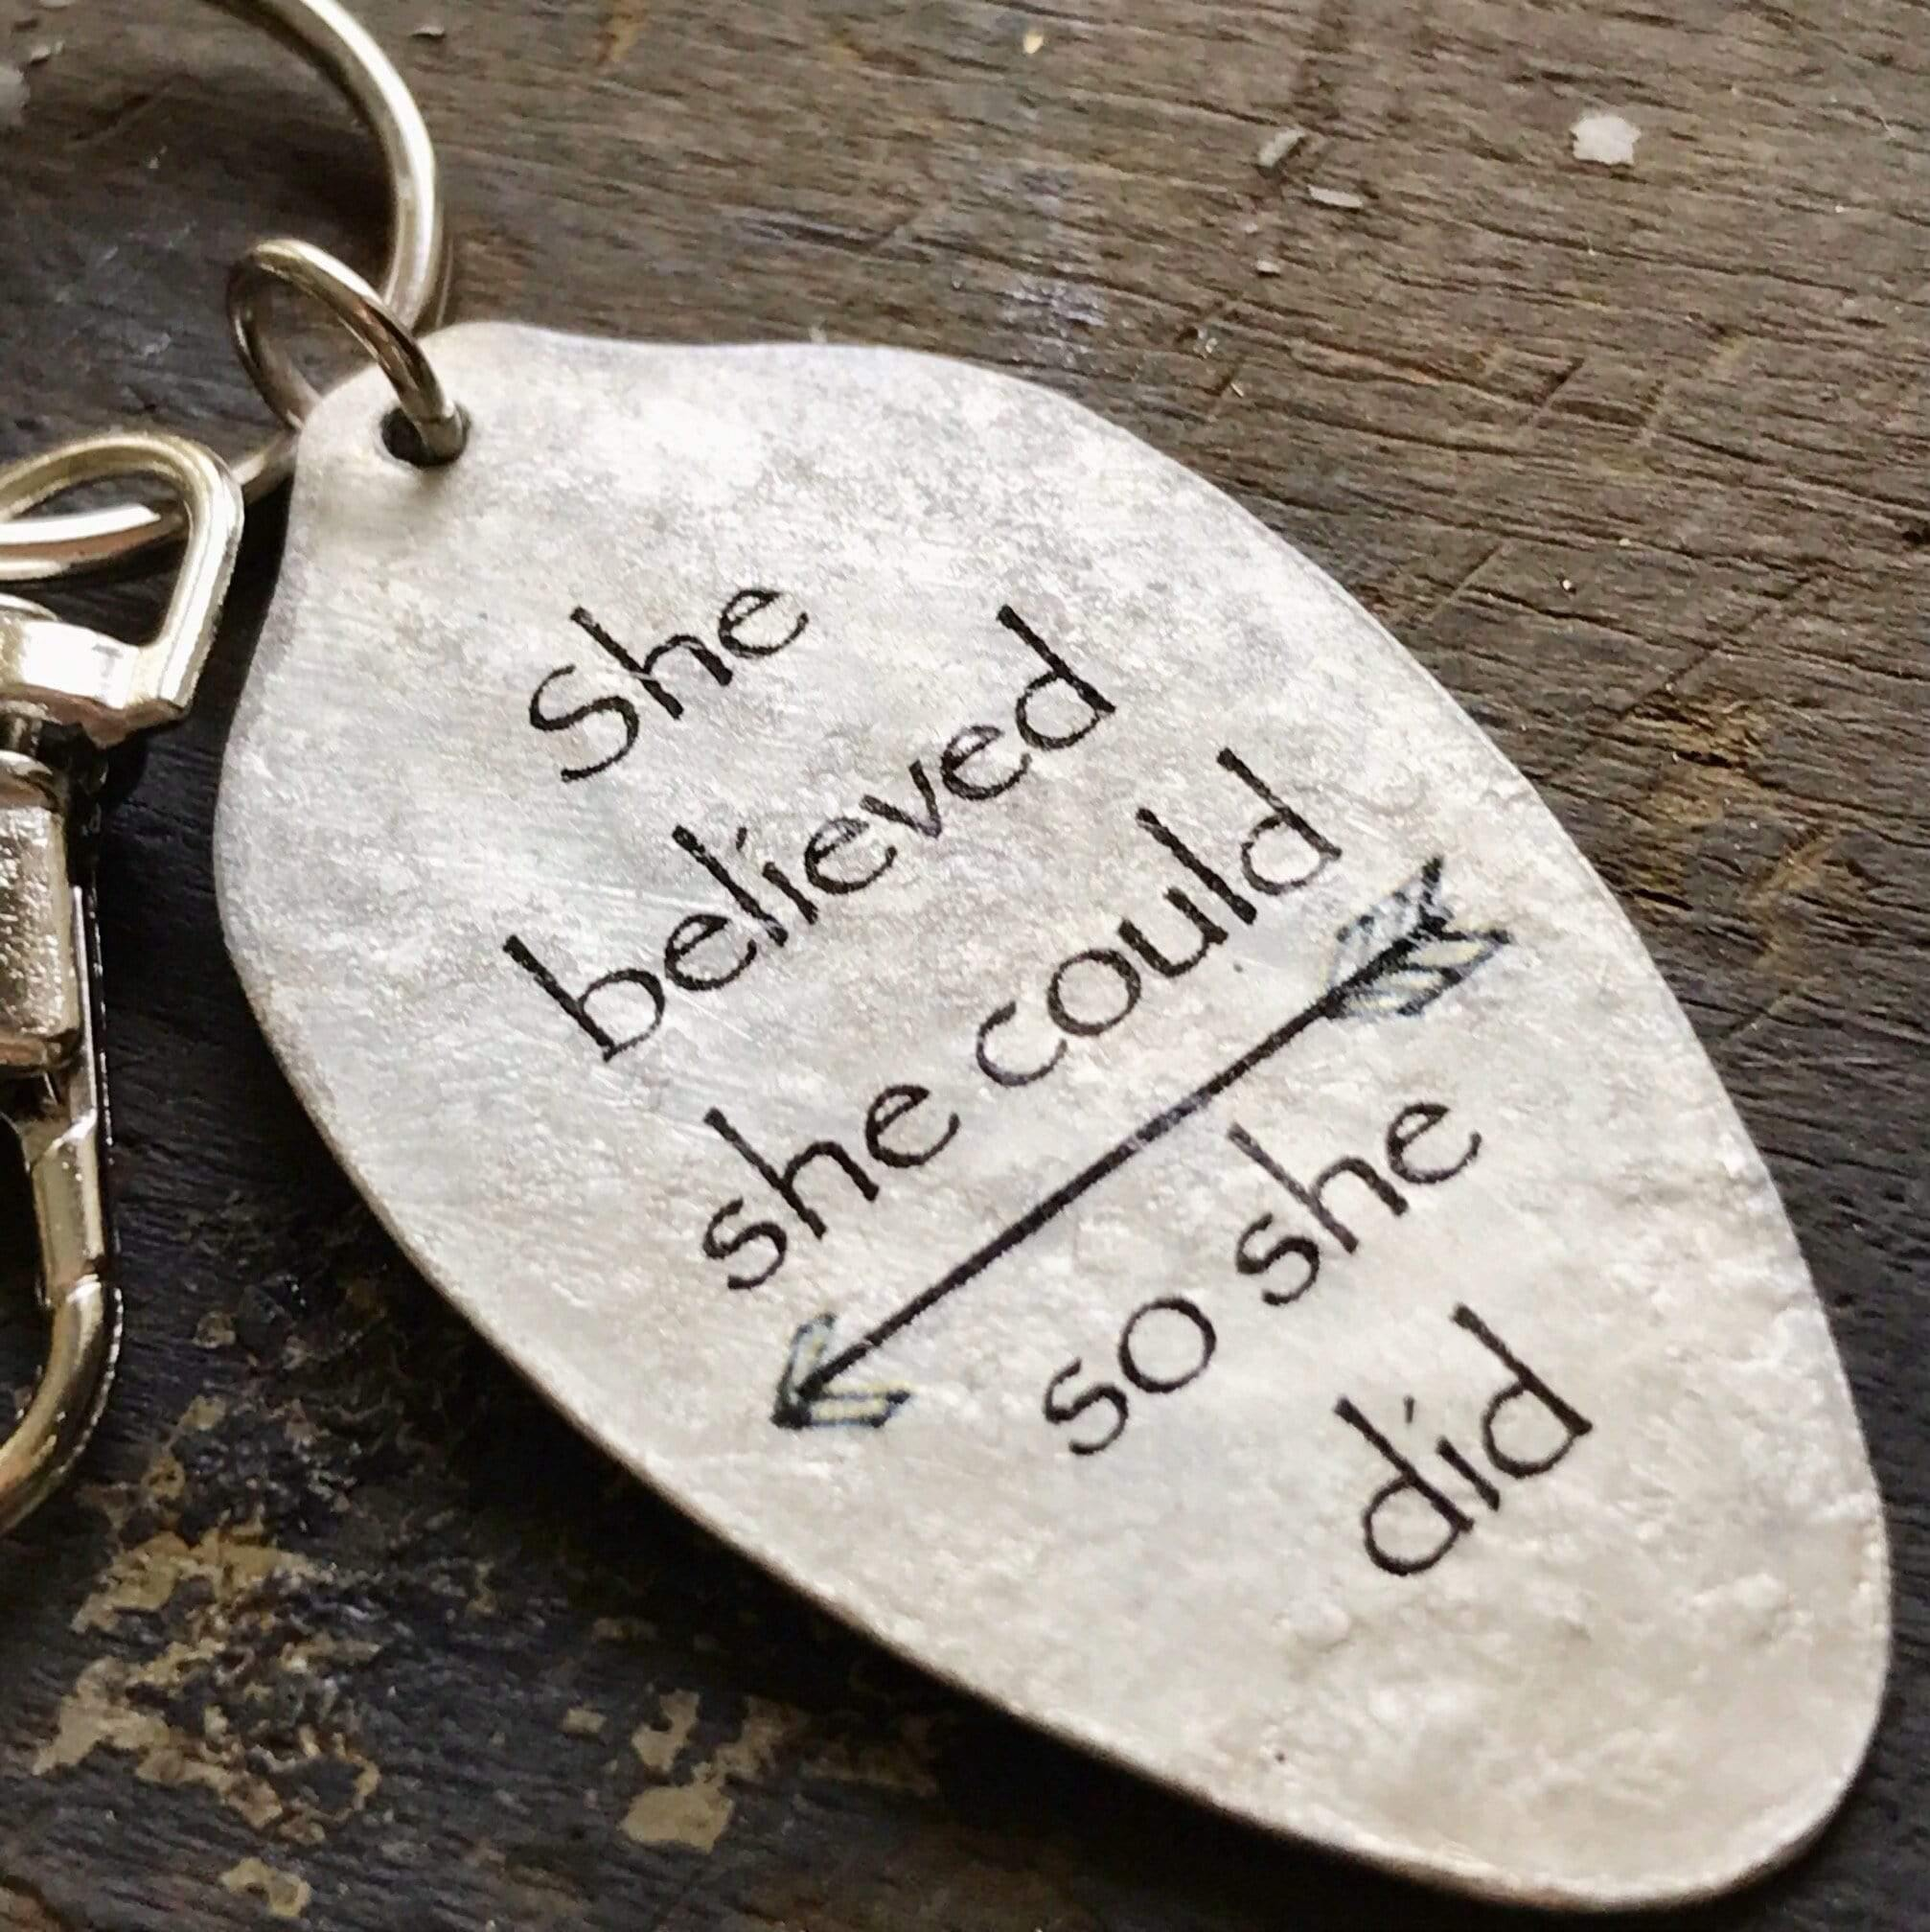 She believed she could keychain kyleemae designs